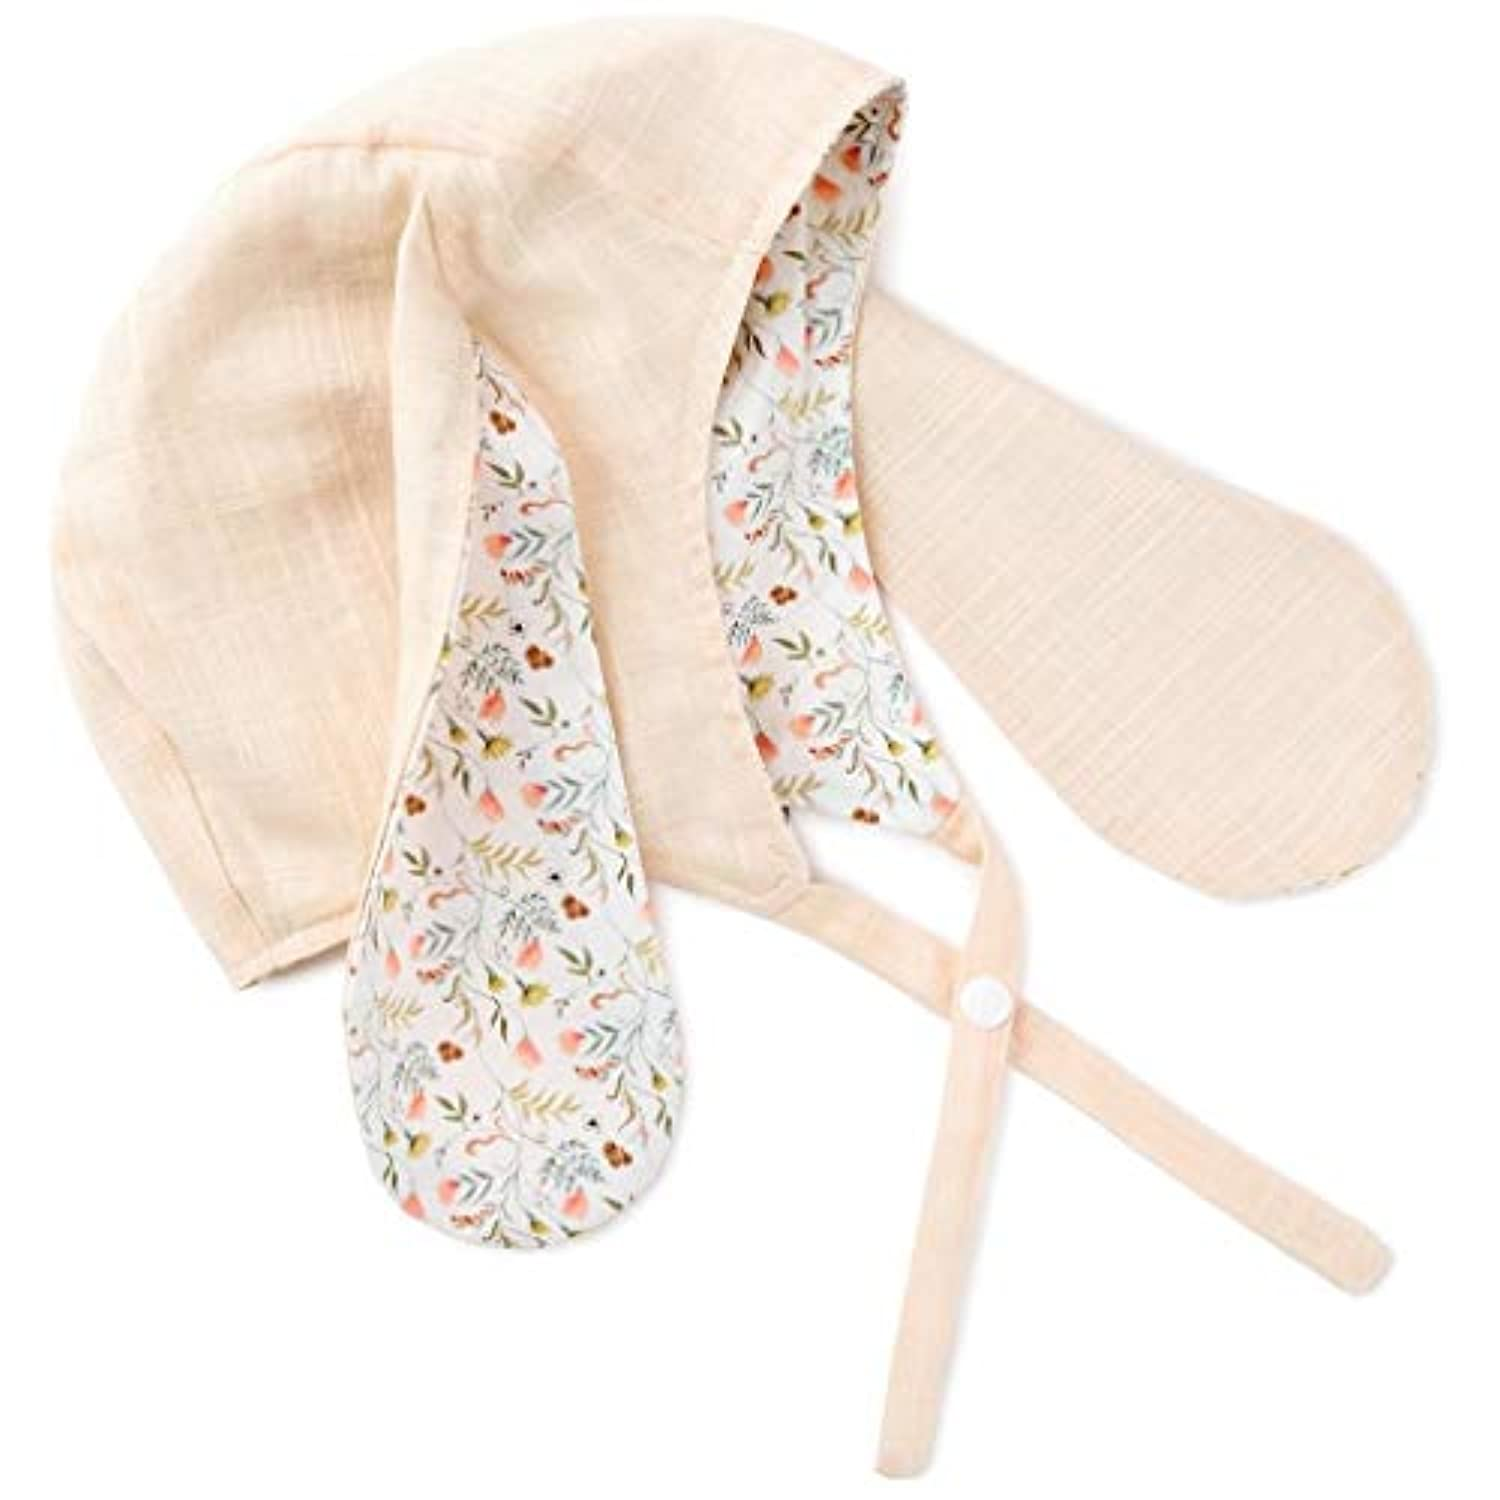 Hallmark Heirloom Floral Bunny Chambray Baby Bonnet HAT ベビー?ガールズ US サイズ: Small カラー: ピンク